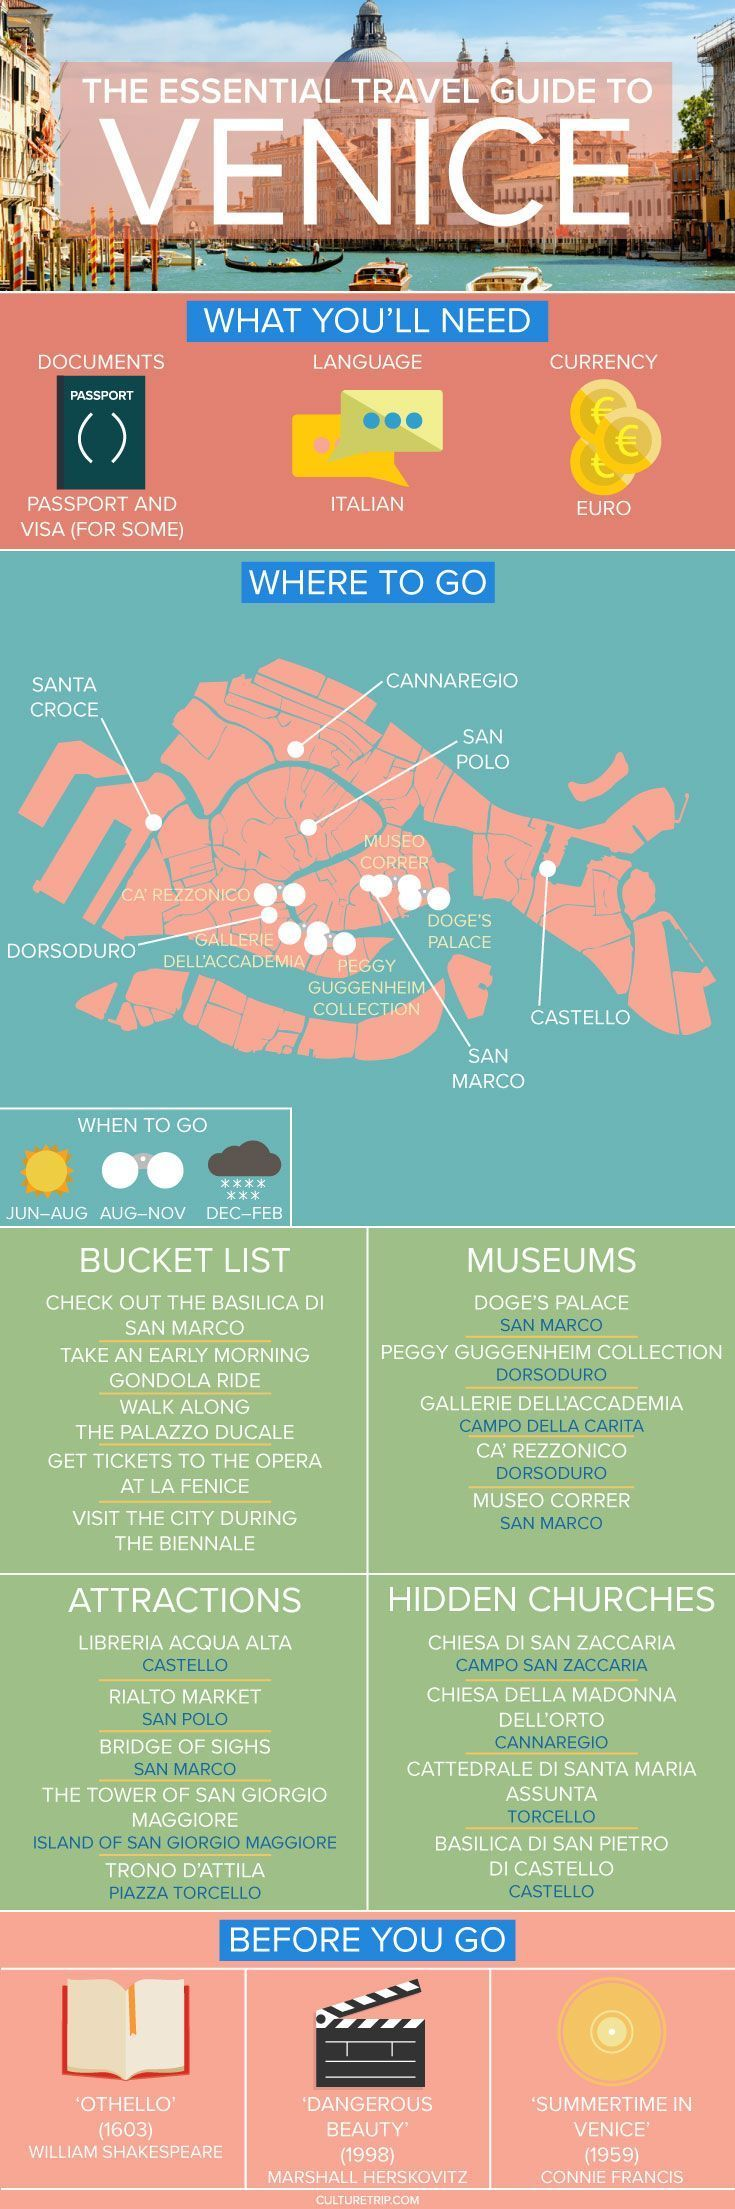 The Essential Travel Guide to Venice (Infographic) Pinterest: @theculturetrip